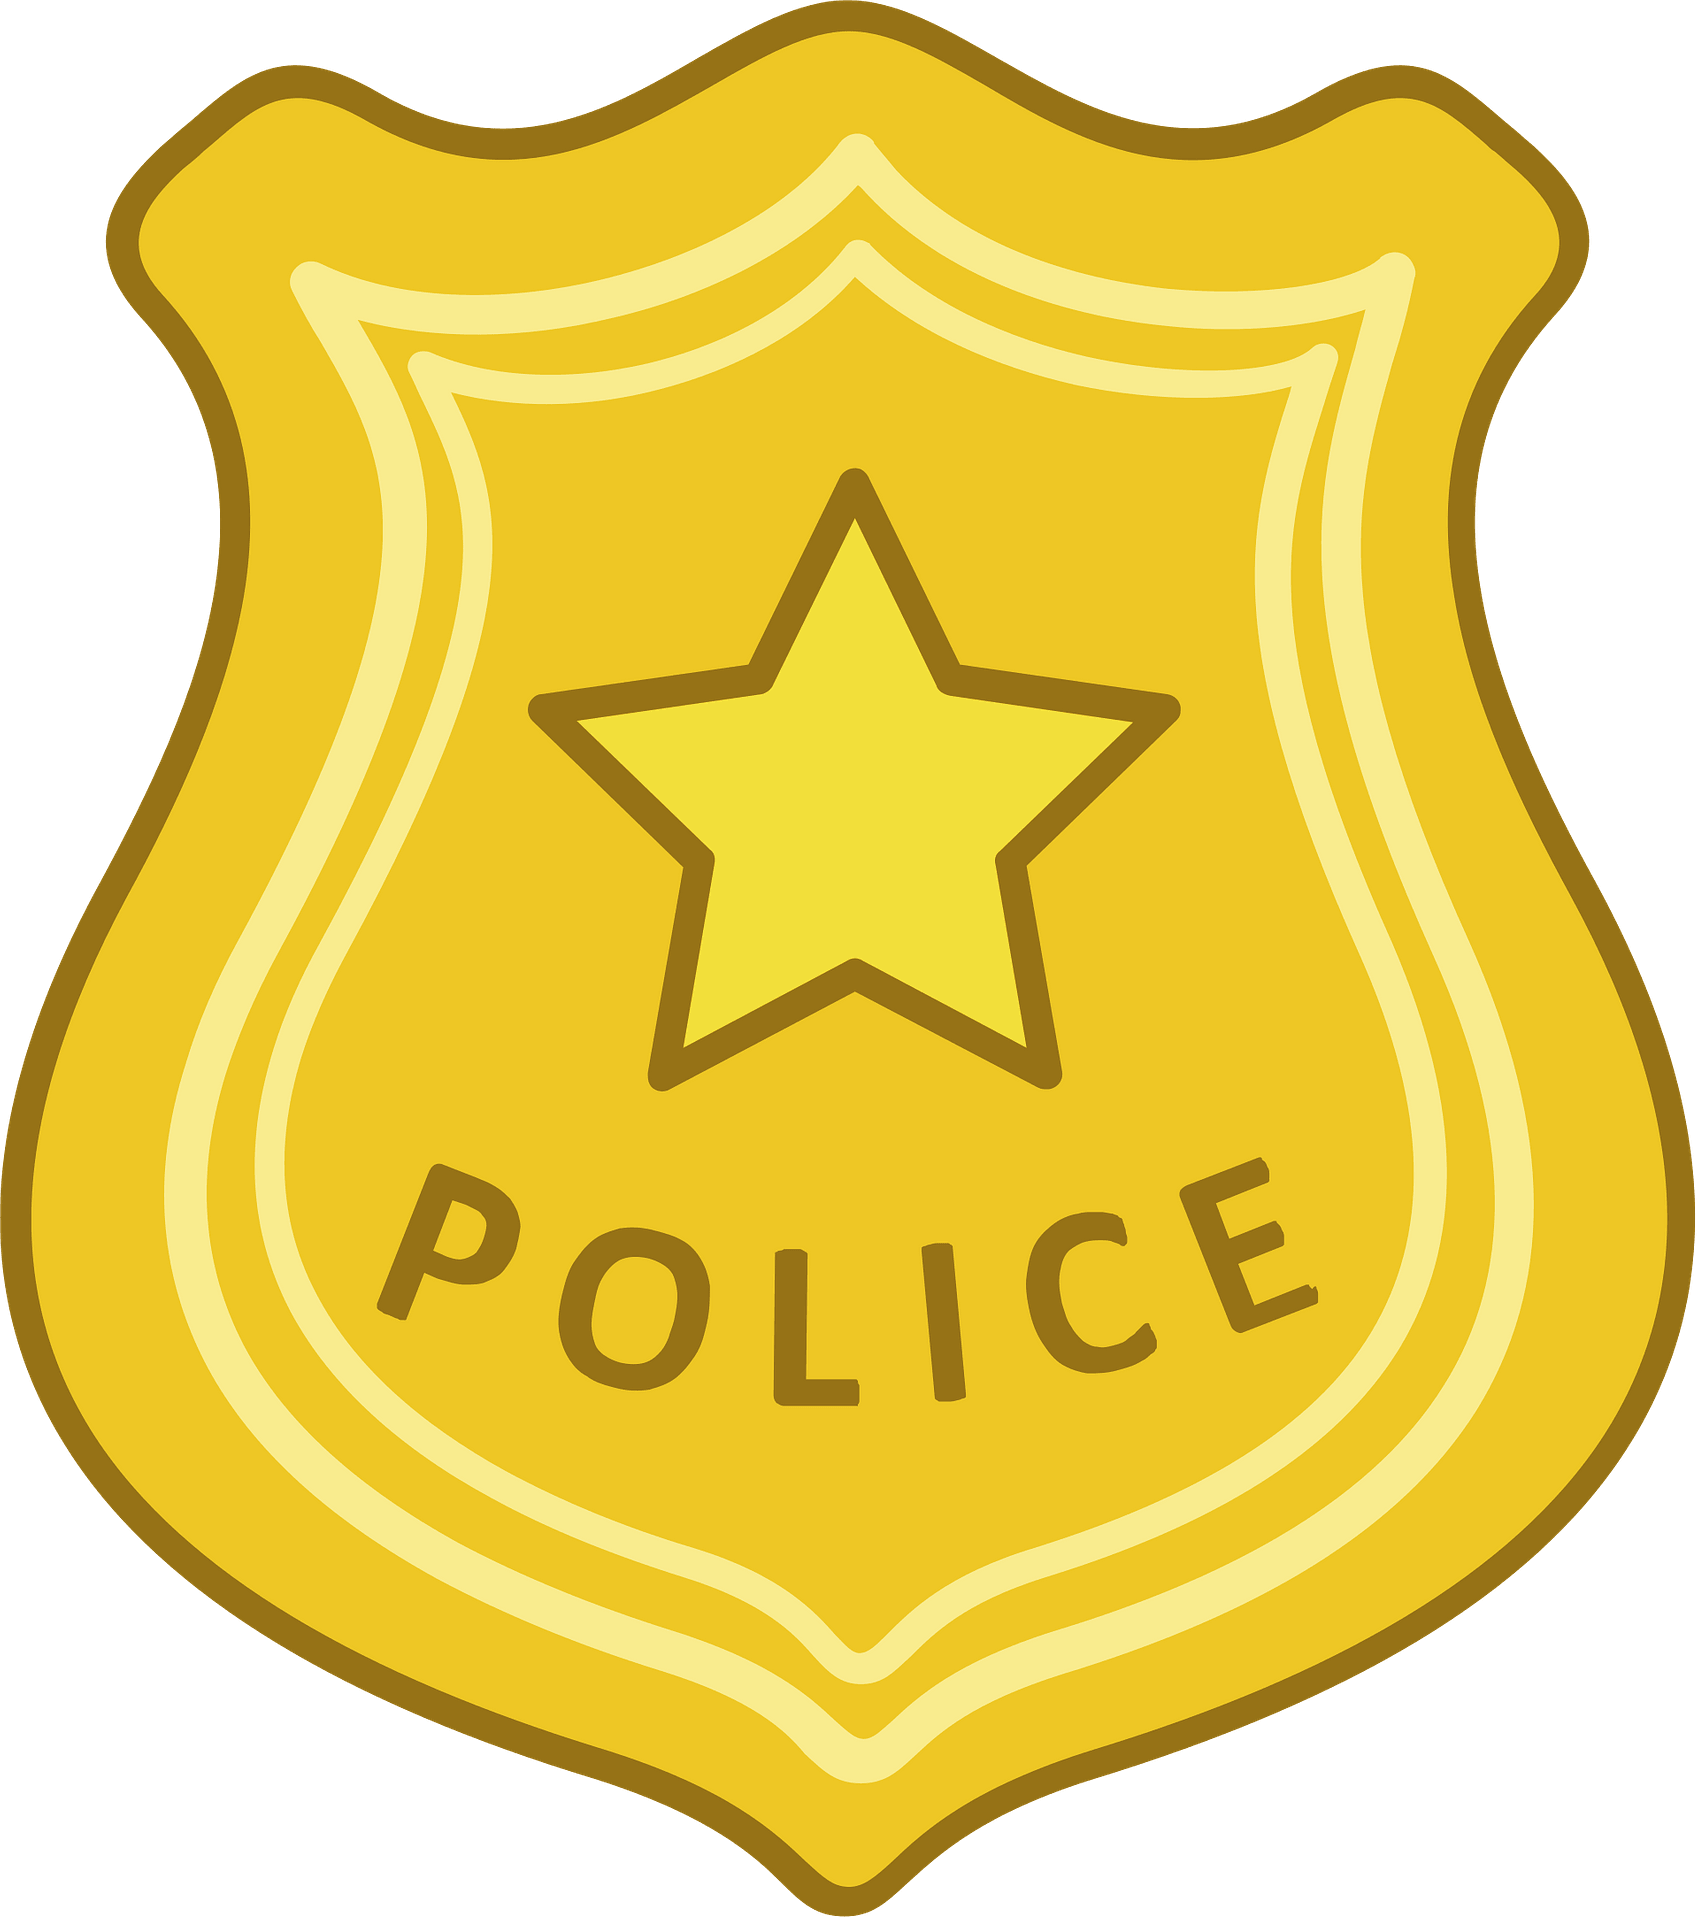 police badge clipart free download transparent png creazilla police badge clipart free download